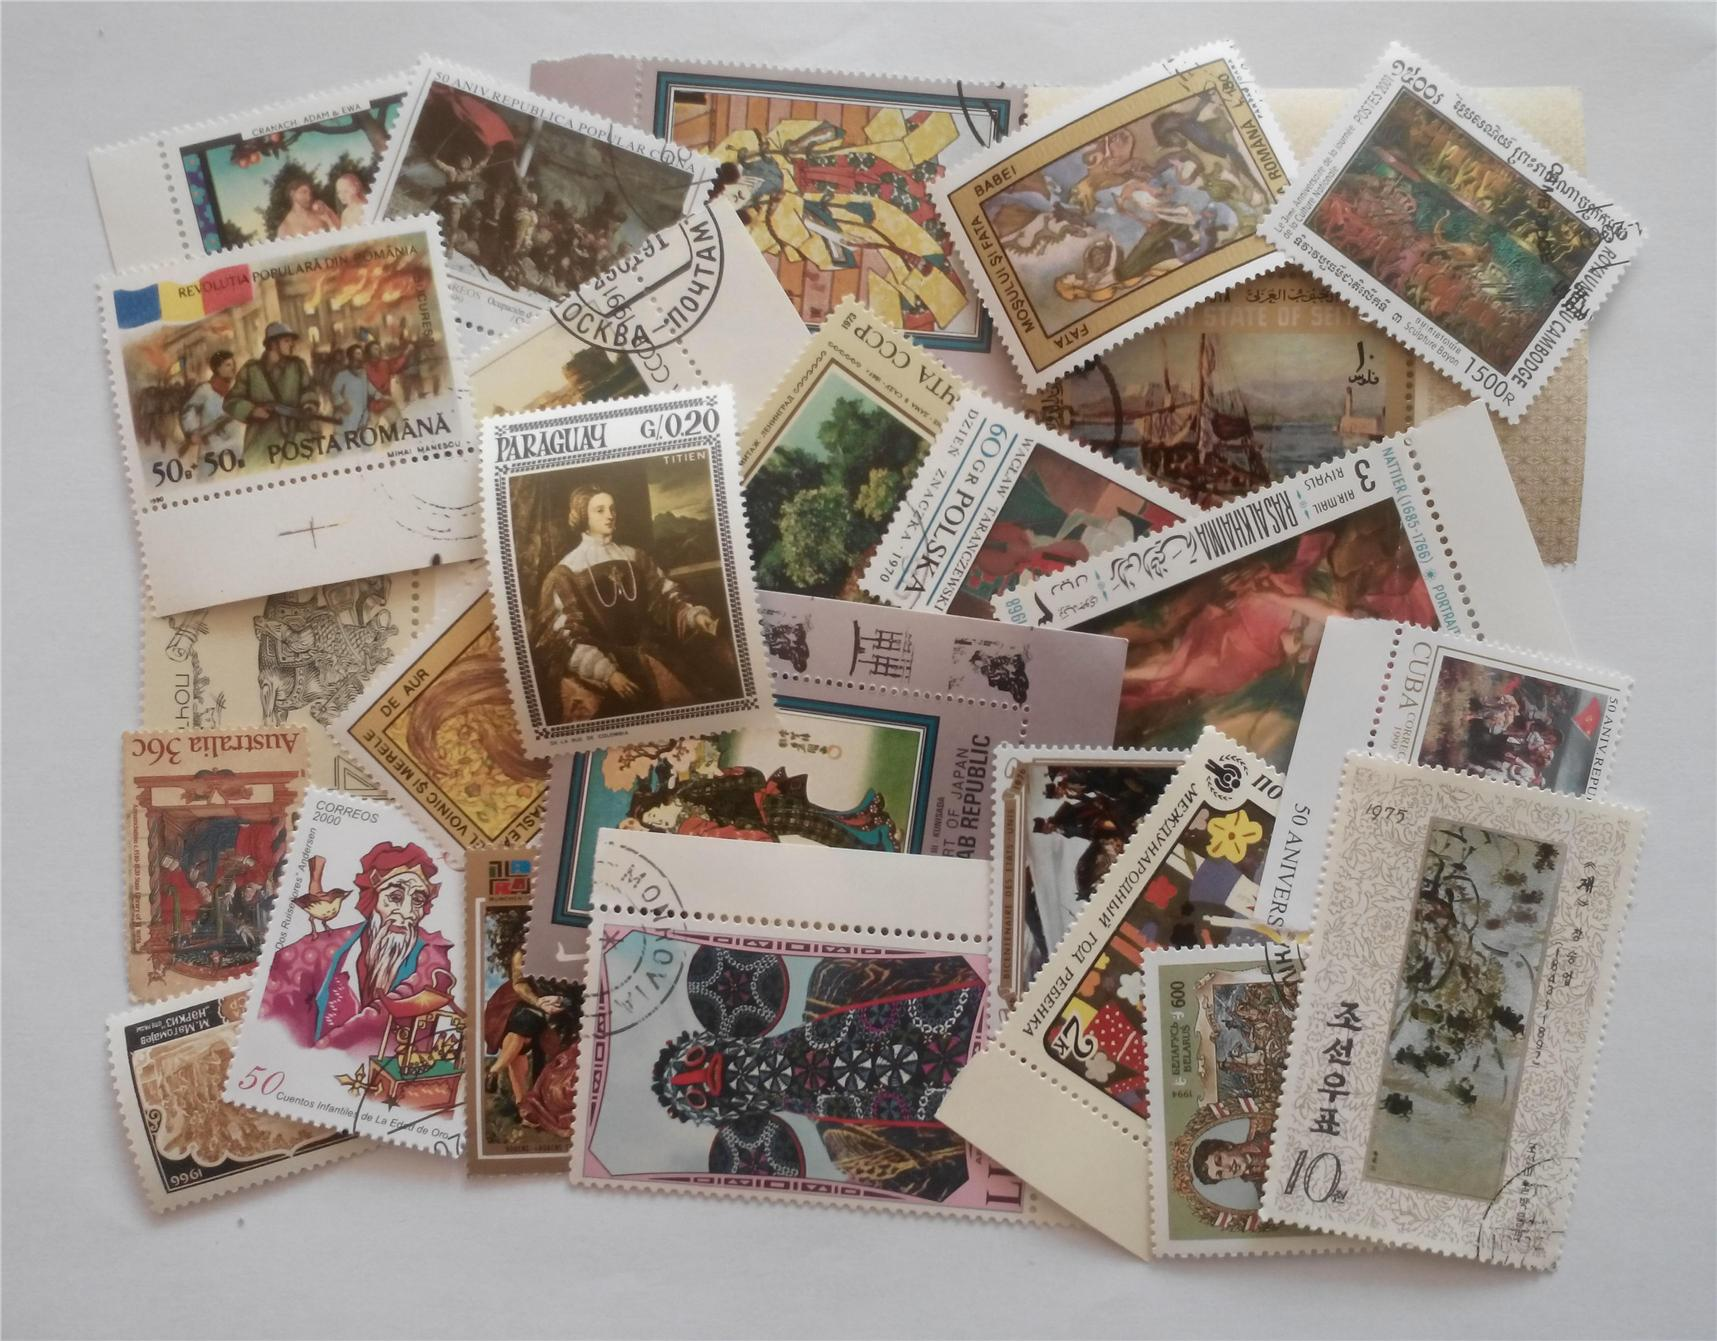 Themed stamps arts 30 pcs